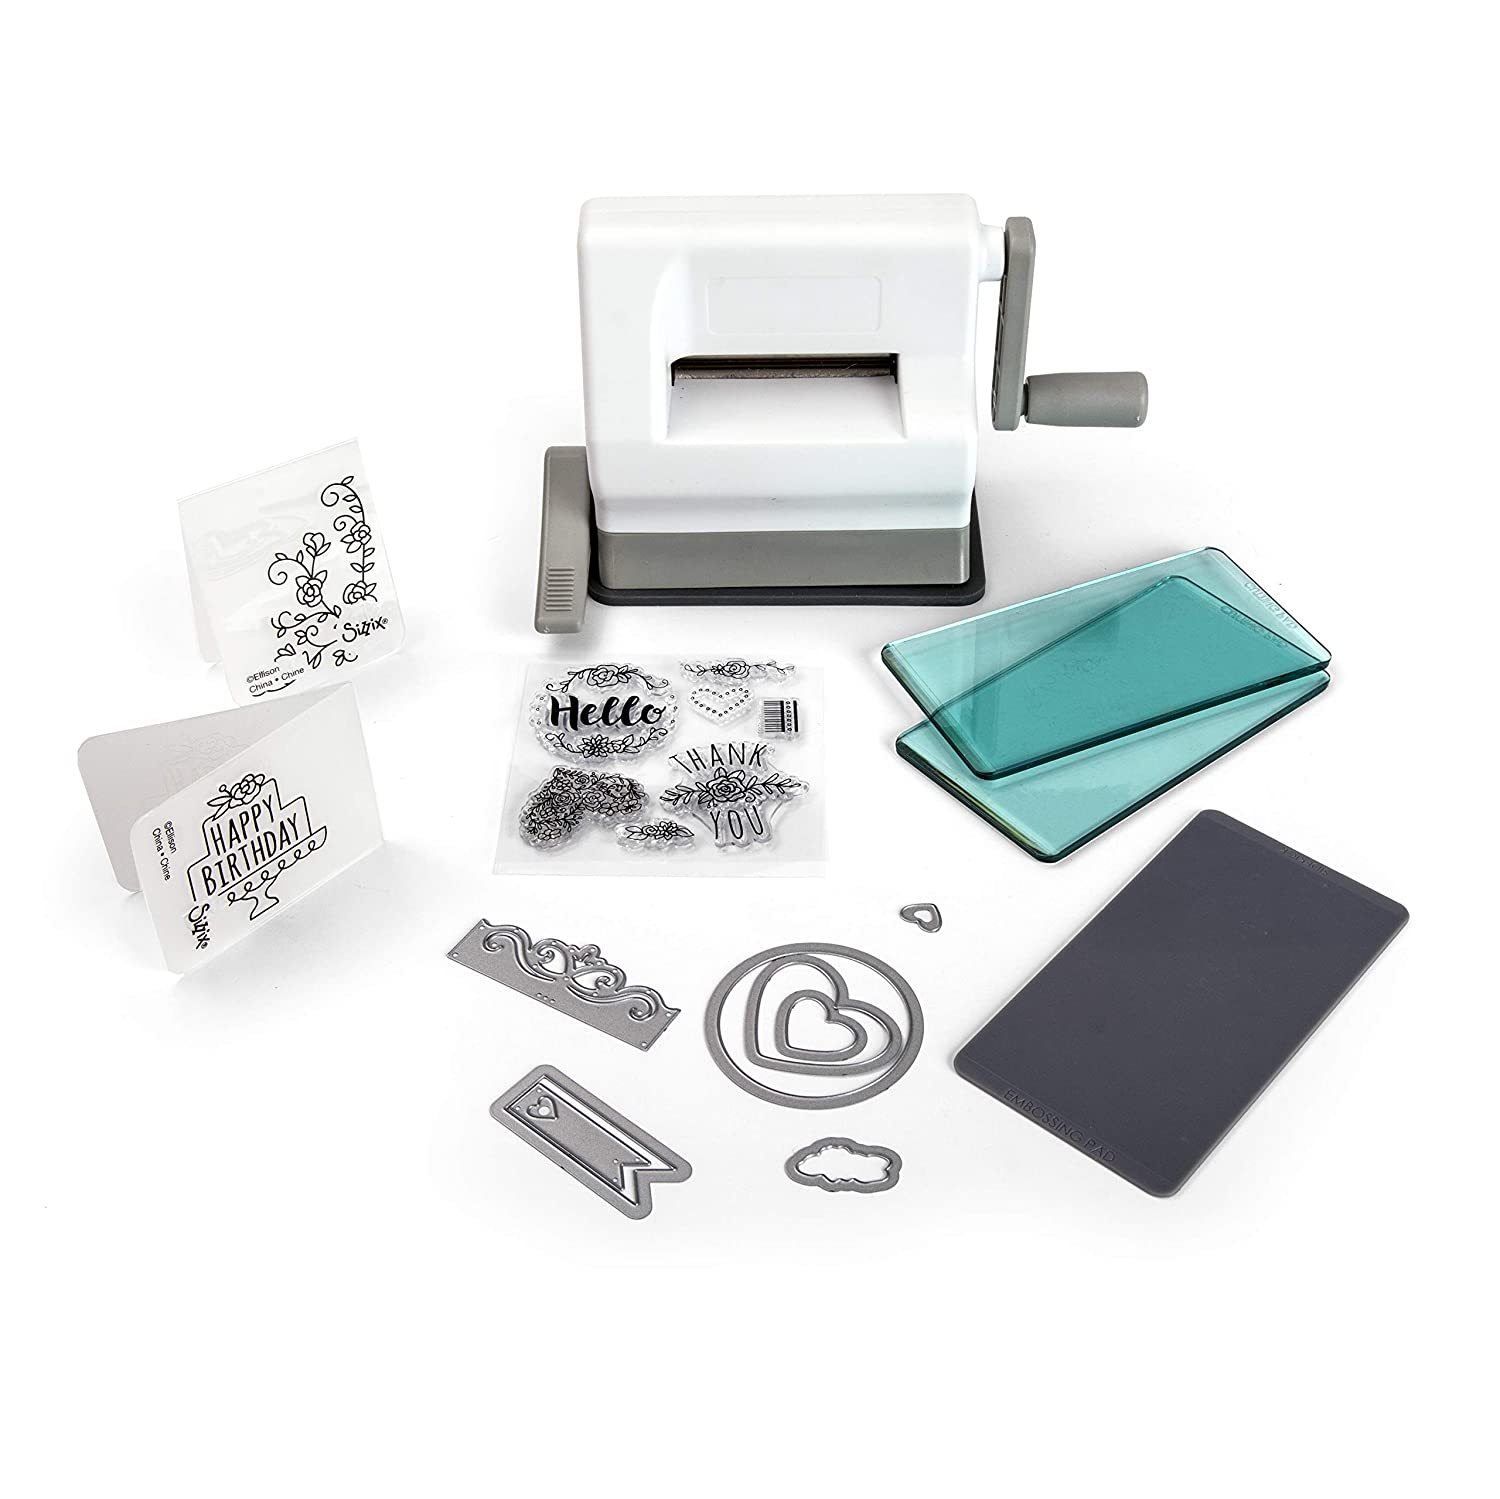 Sizzix Manual Die Cutting Machine